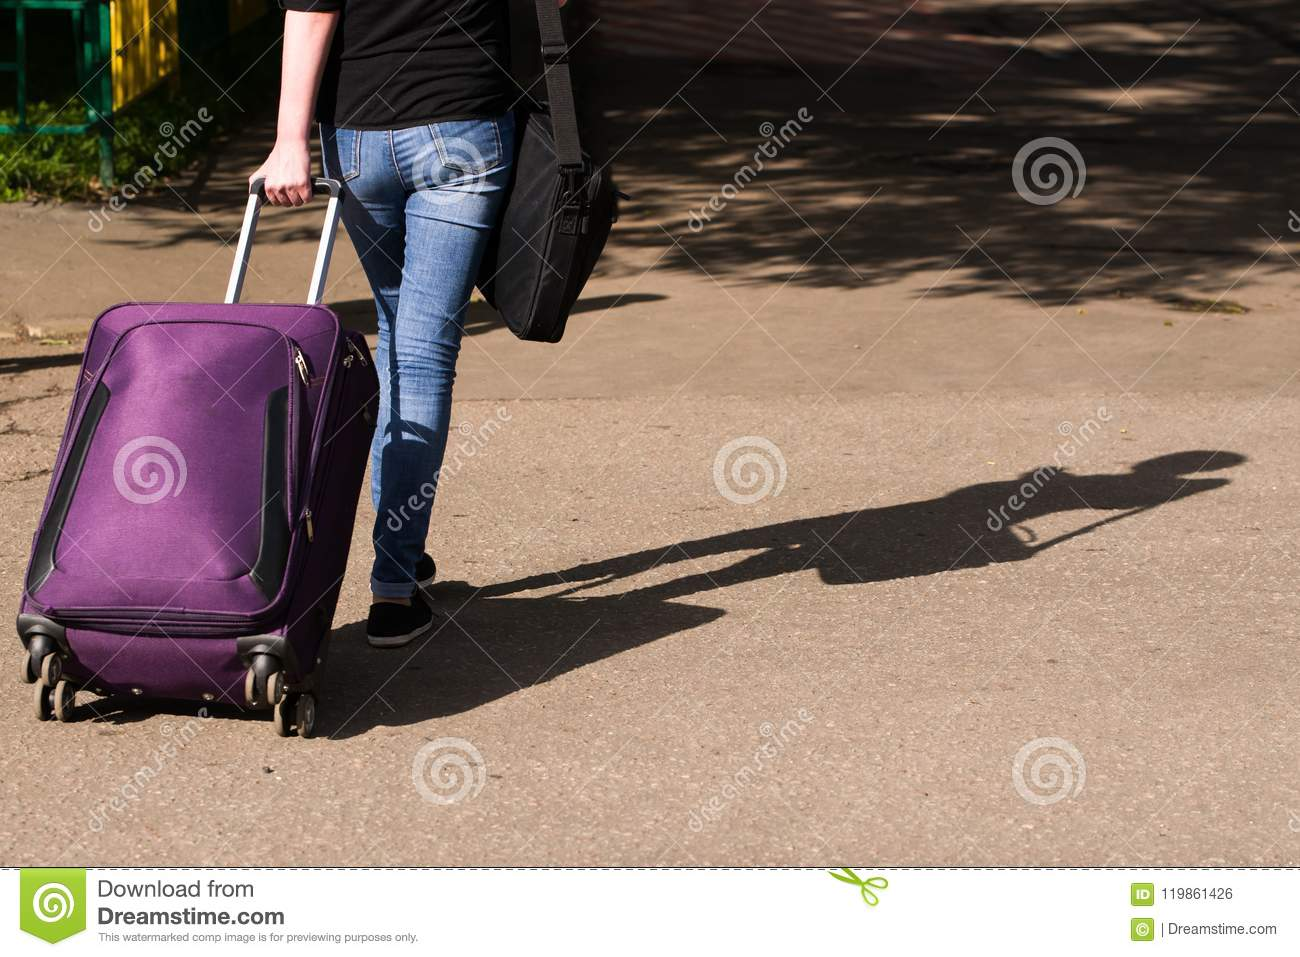 Girl in jeans is on the road with a suitcase